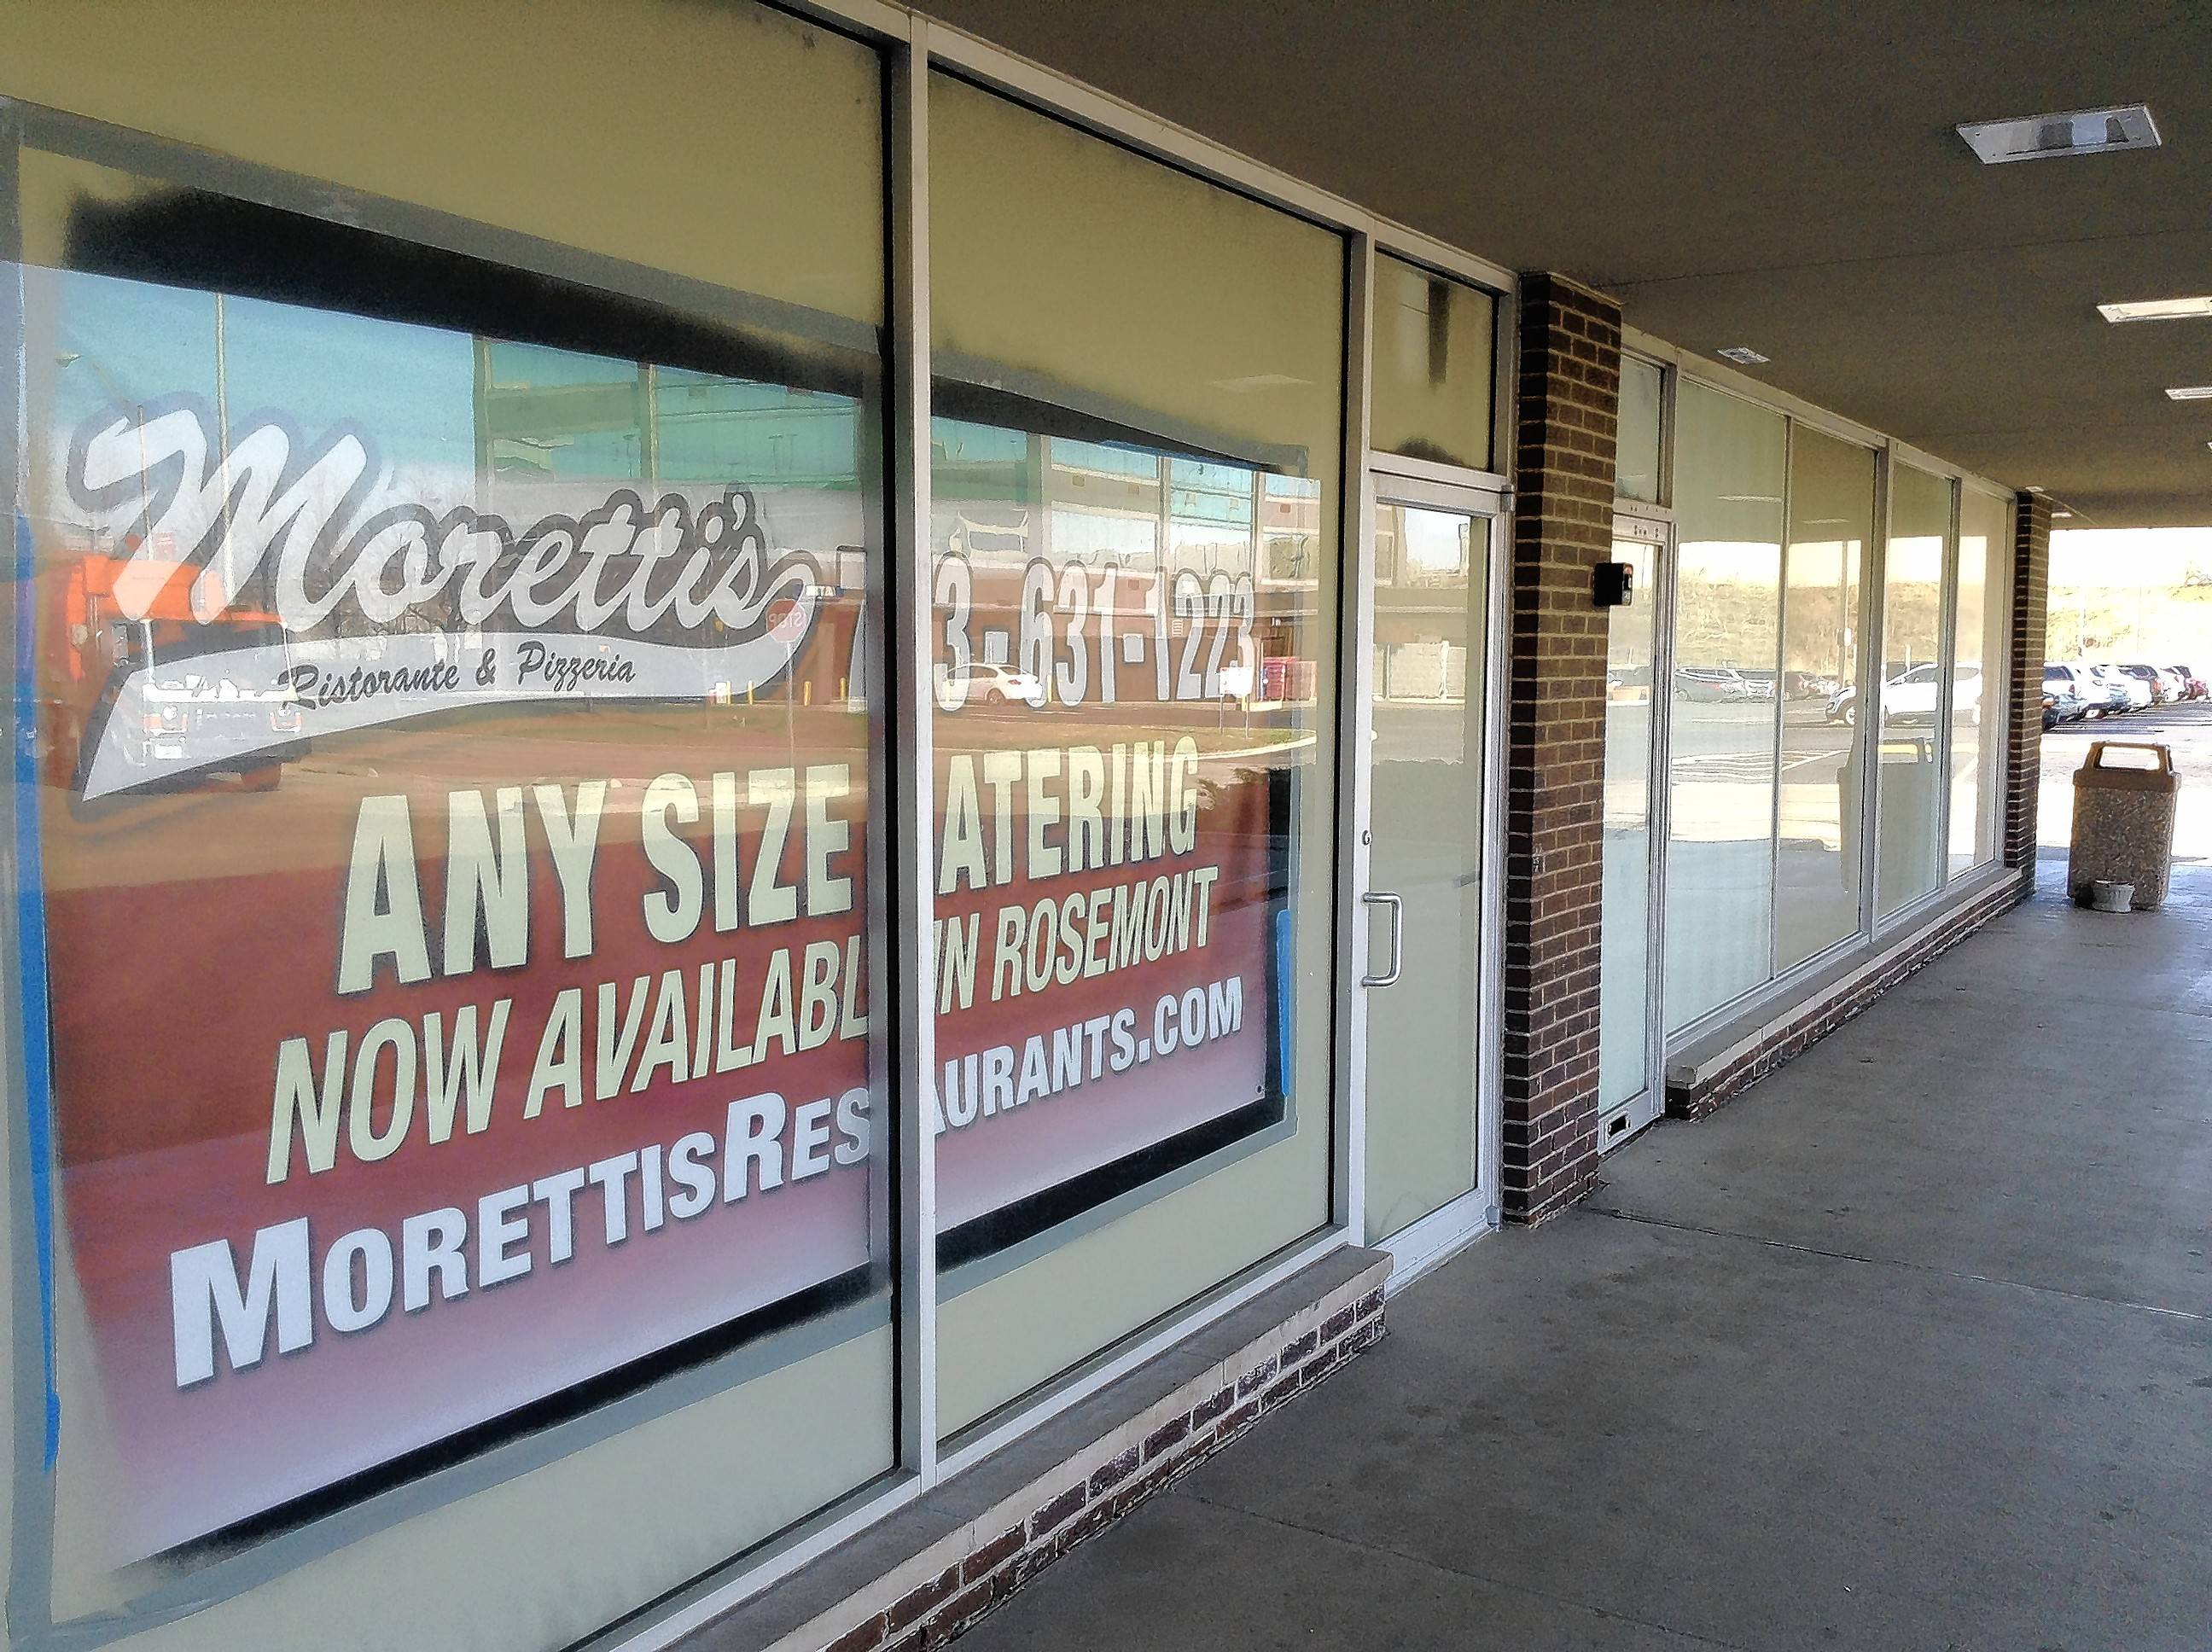 New Rosemont Moretti's delayed, so subsidy cut by $200,000